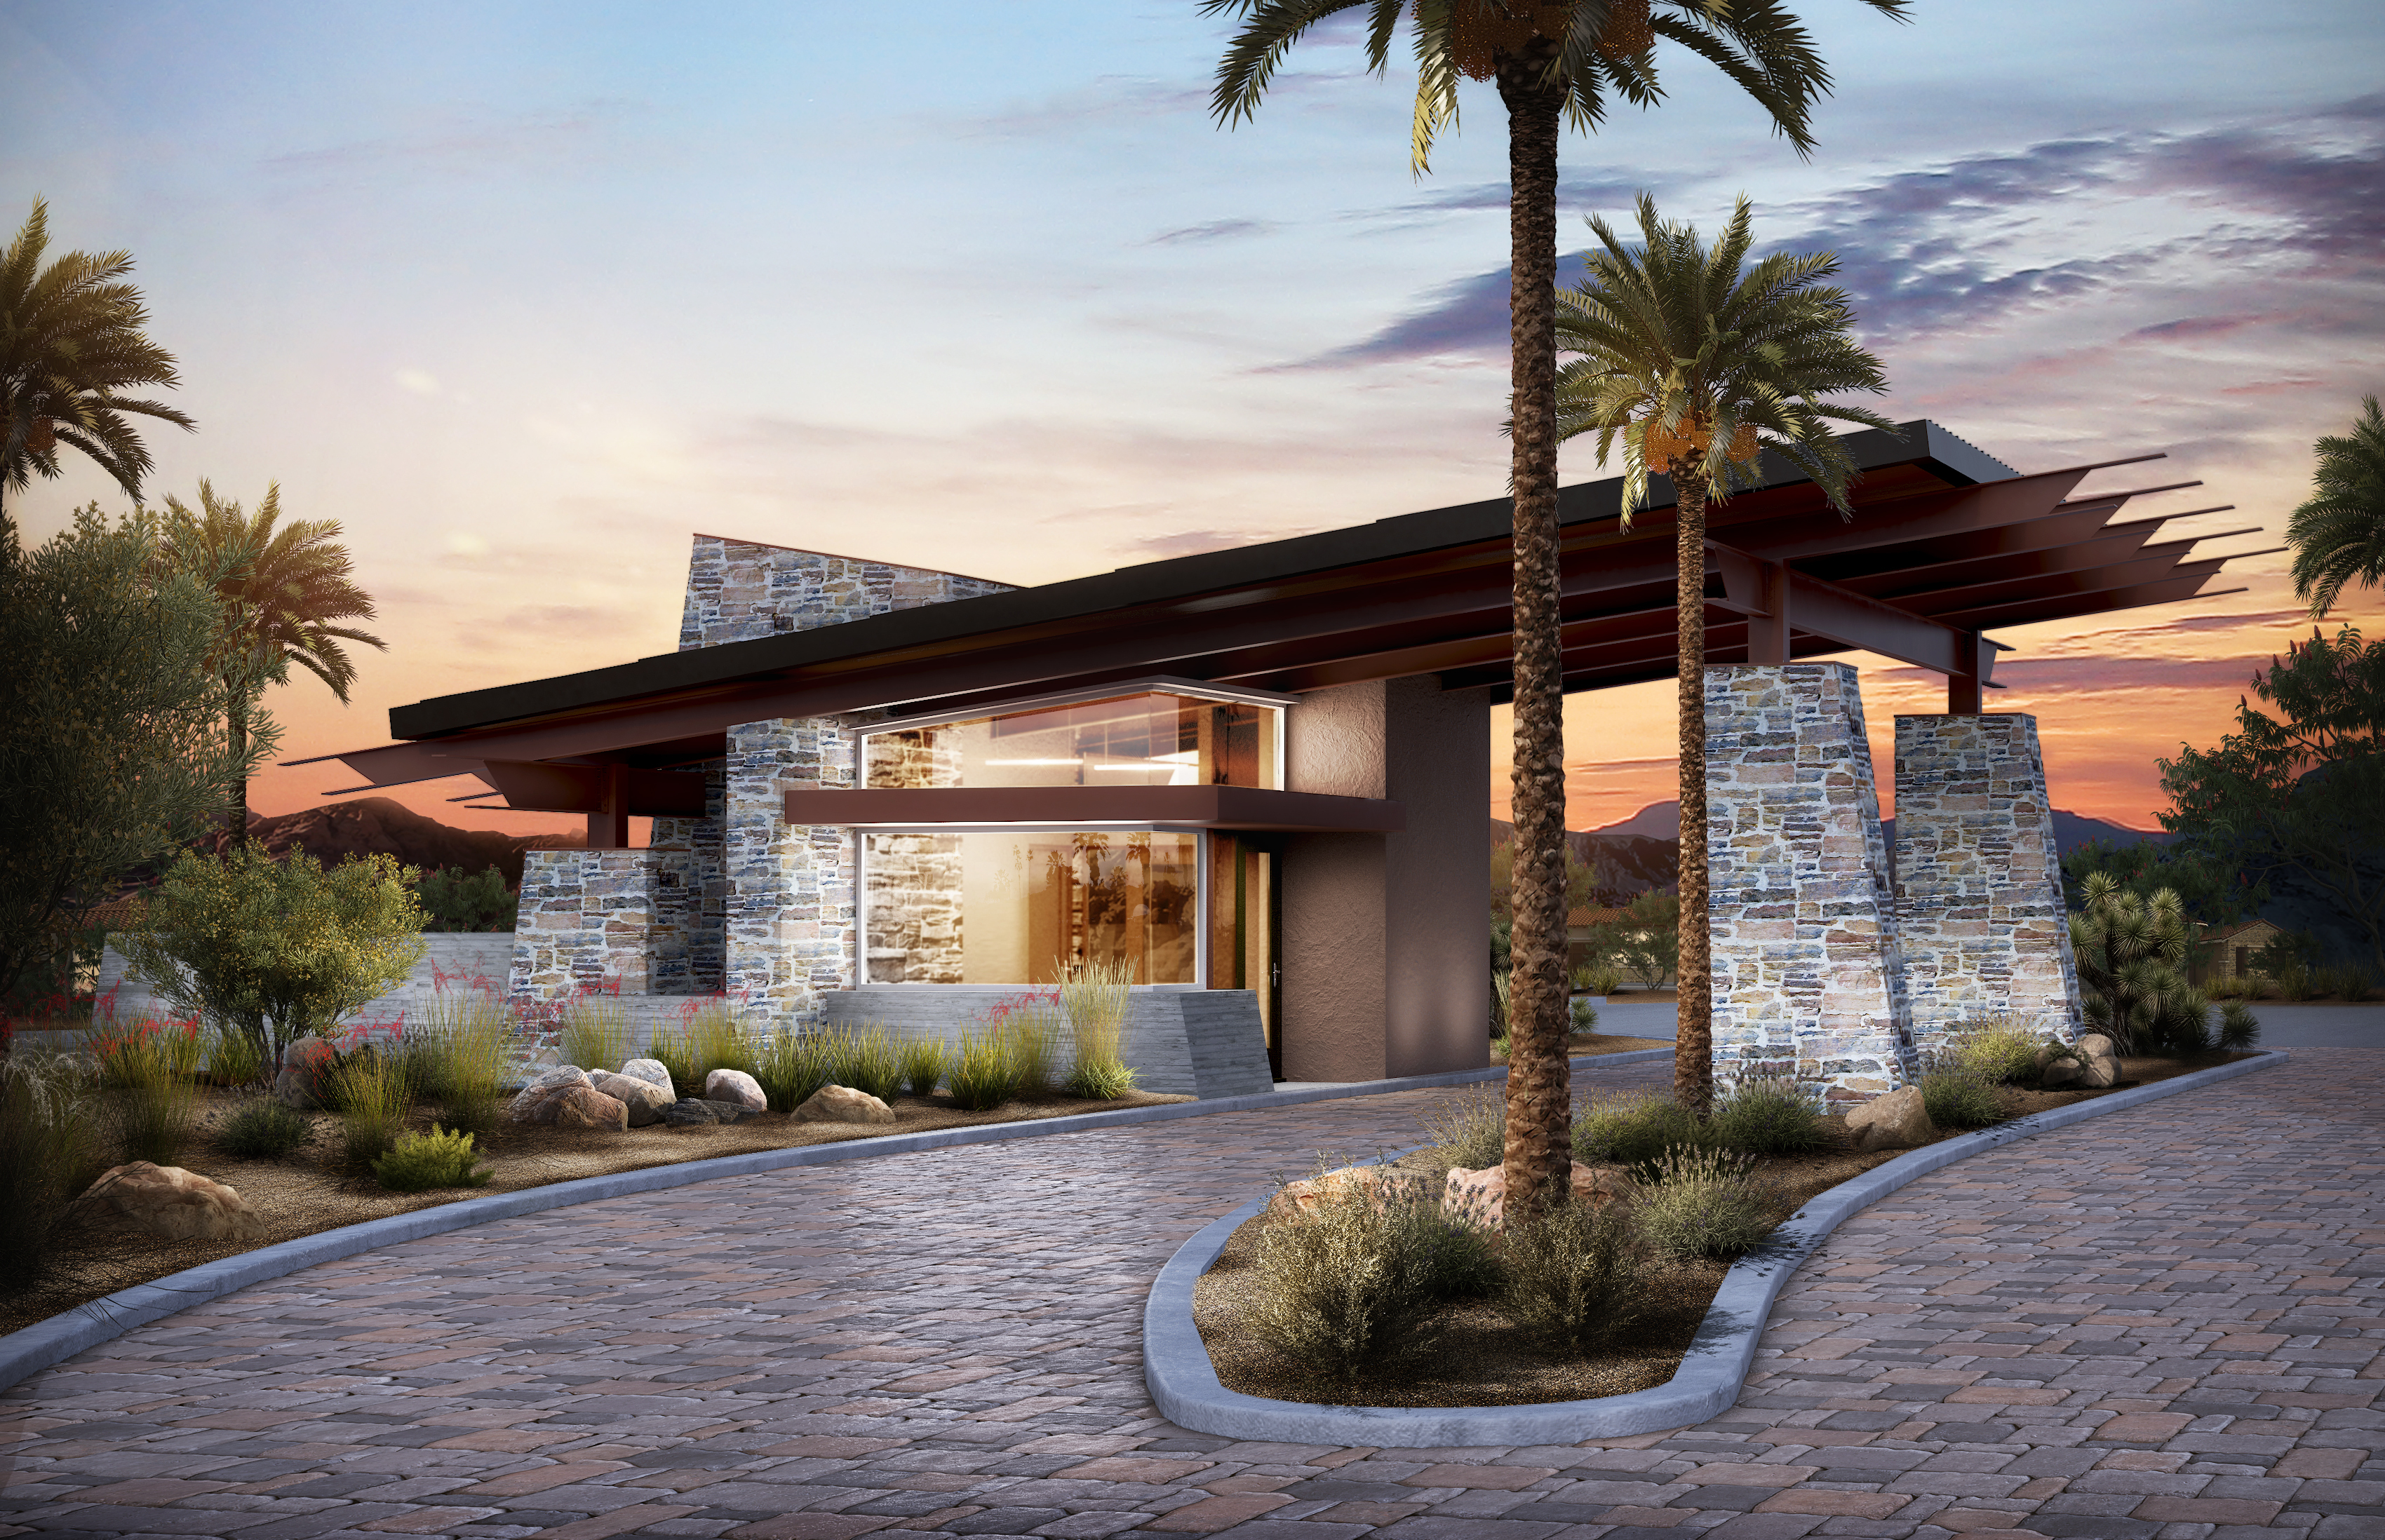 del webb announces grand opening of highly anticipated rancho mirage